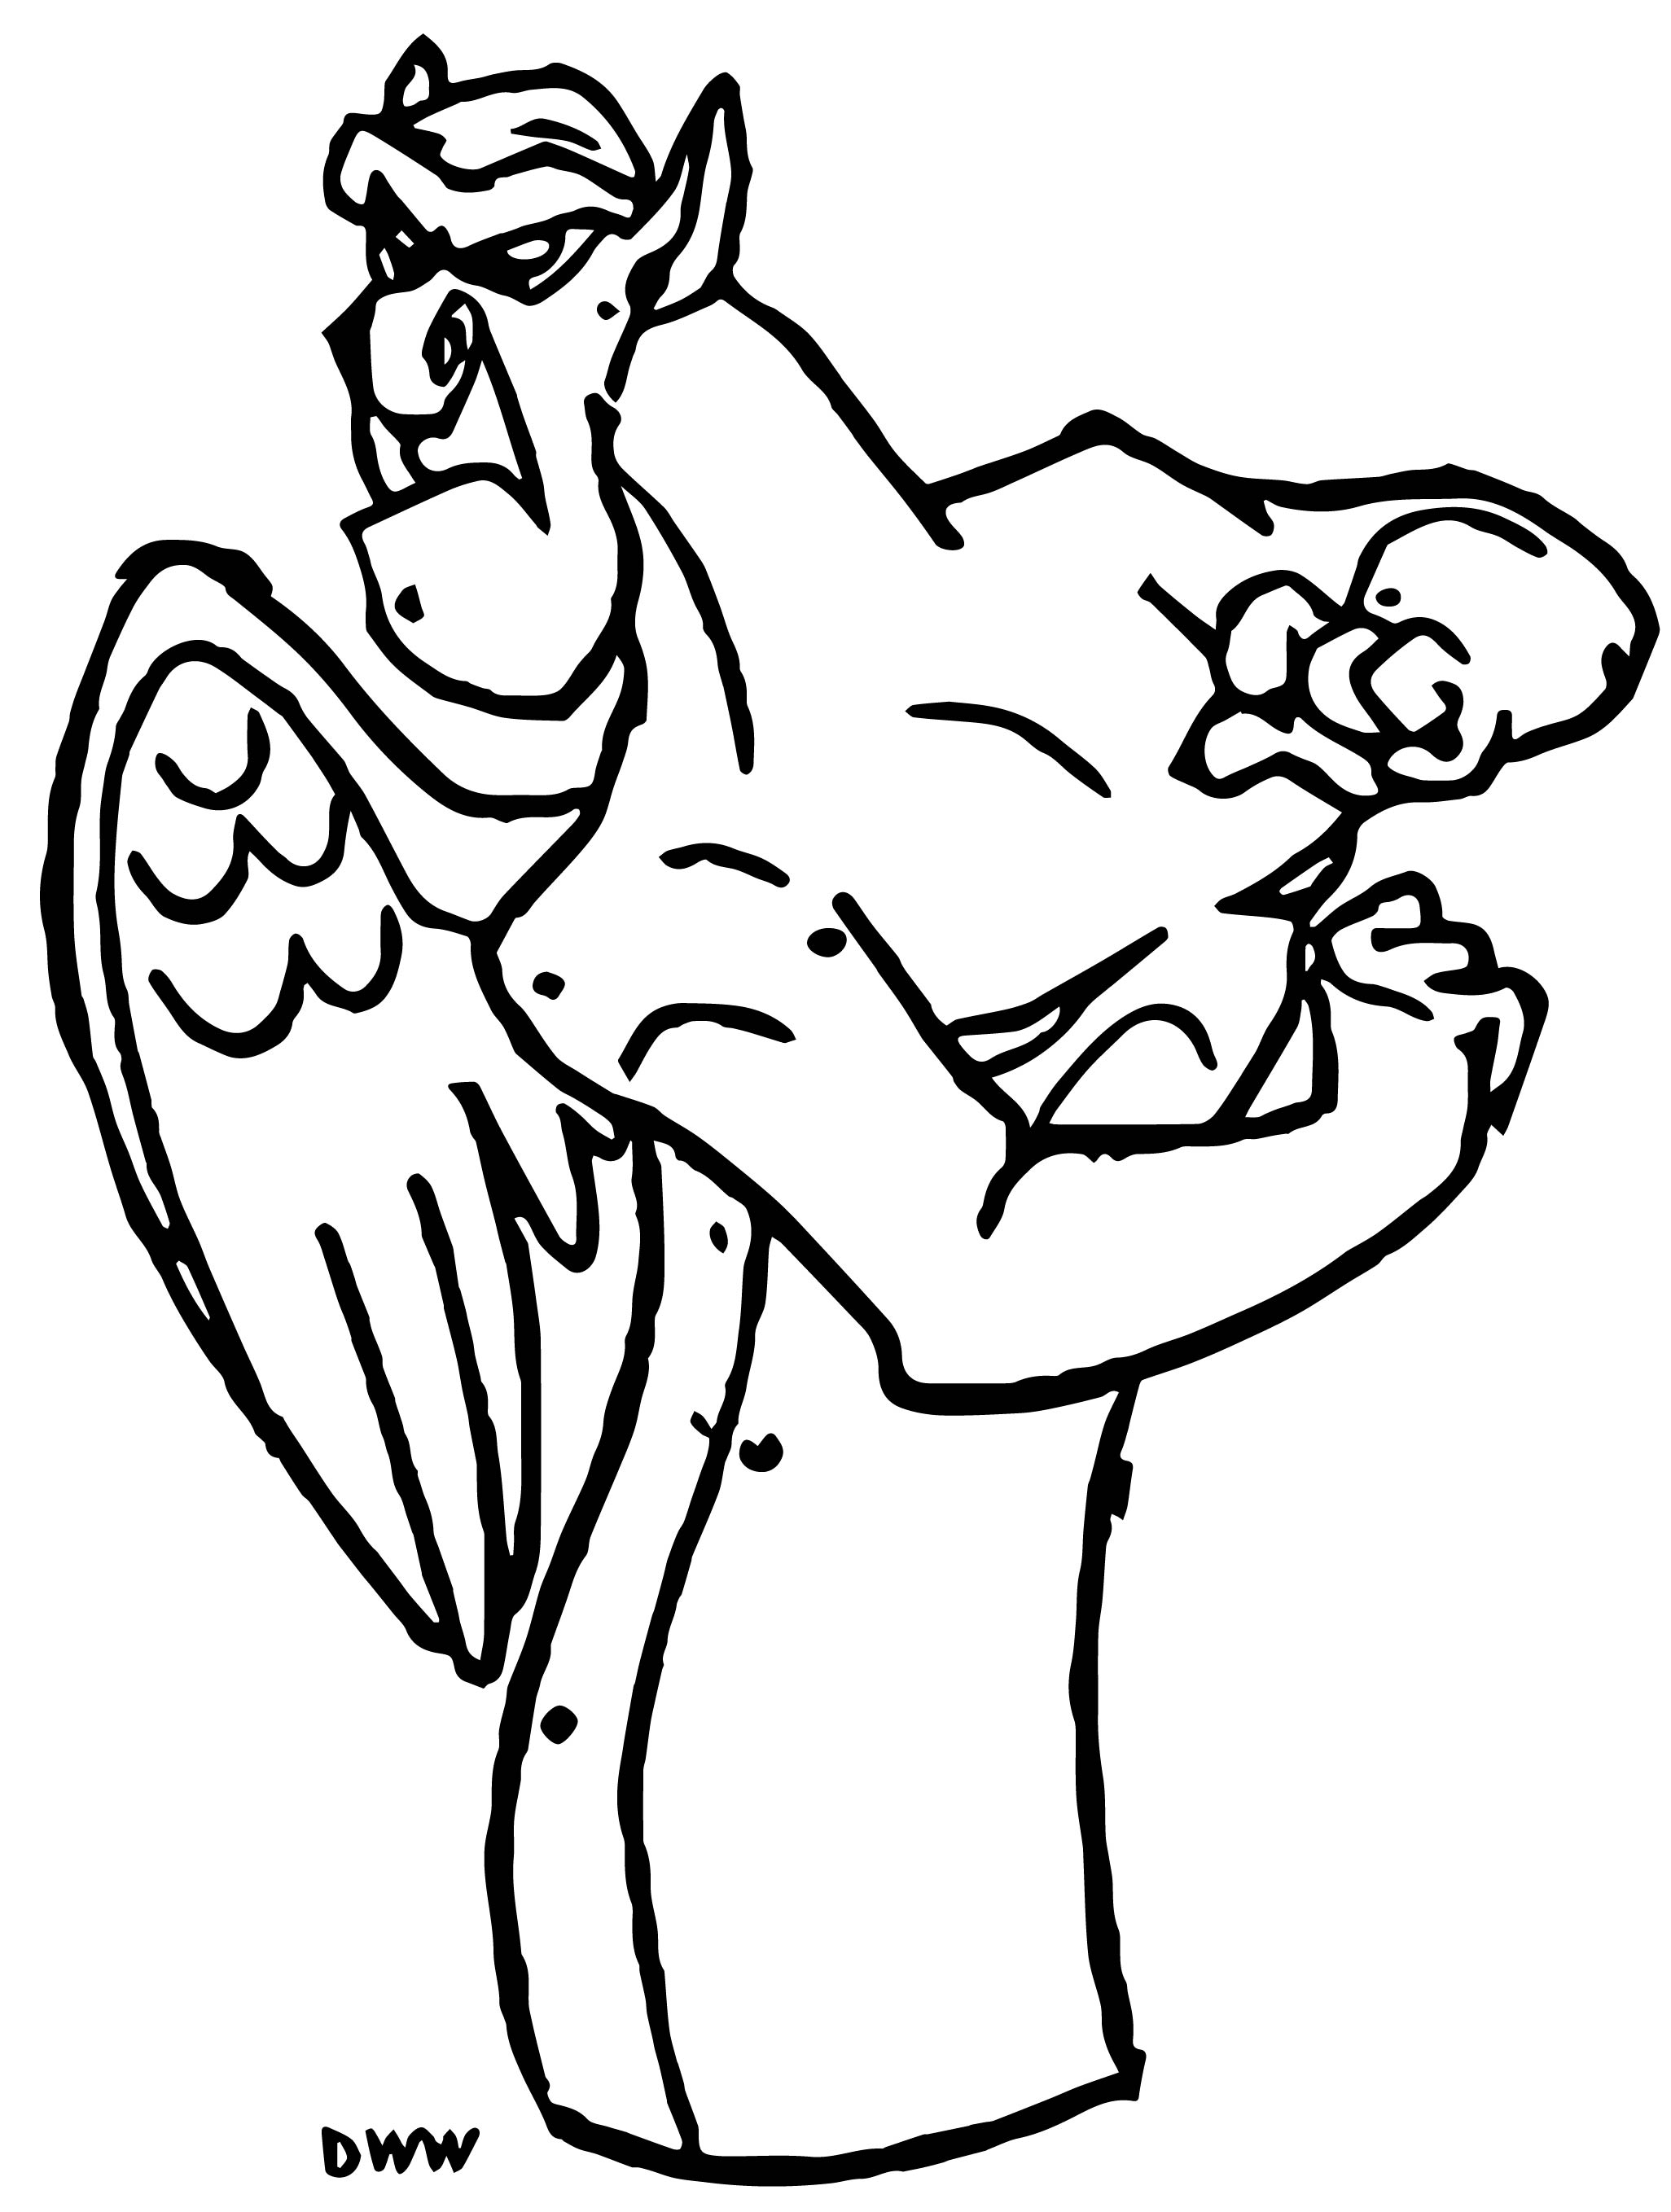 The Hunchback Of Notre Dame Victor31 Cartoon Coloring Pages